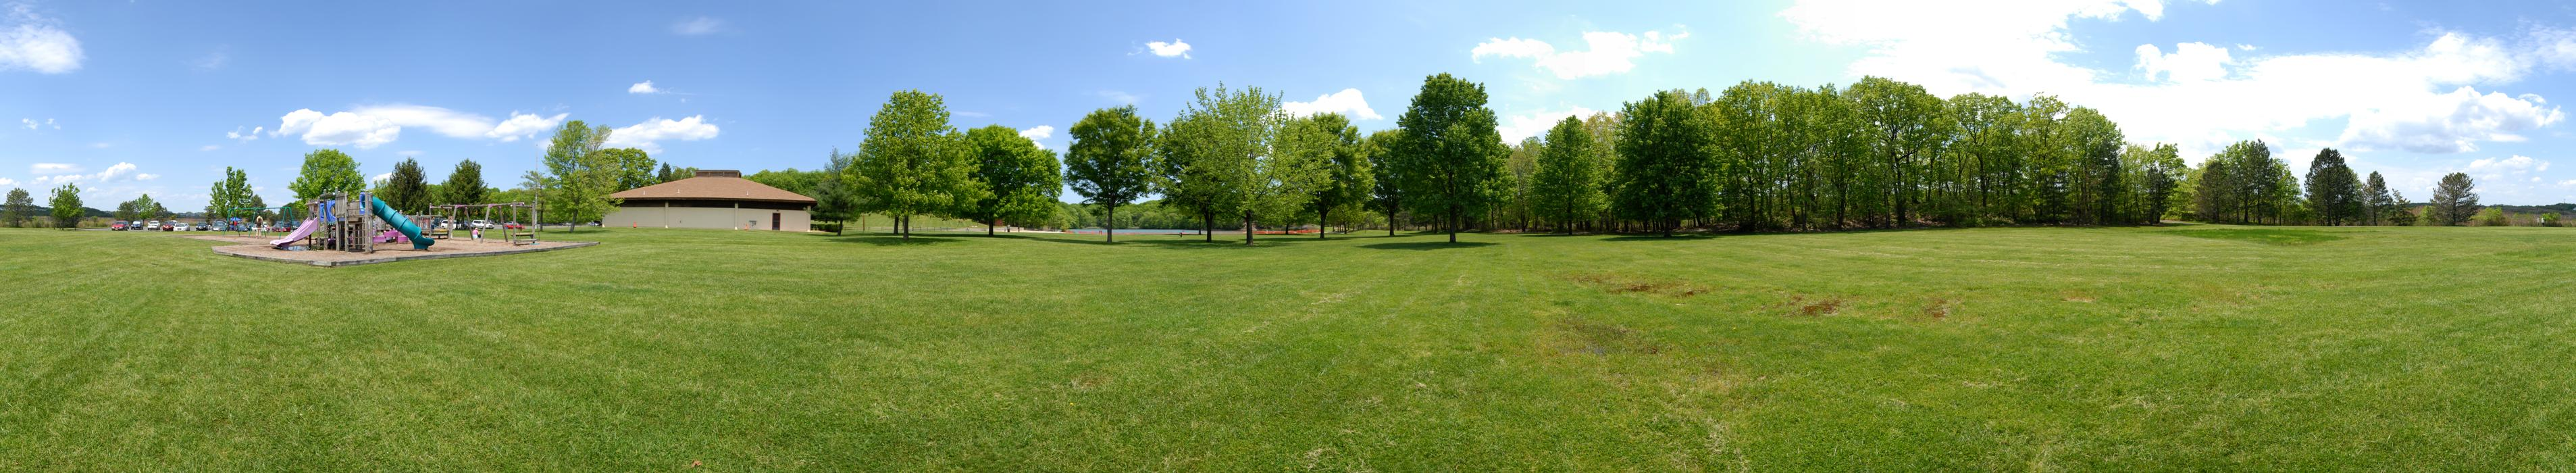 blue sky, grass, panoramic, trees